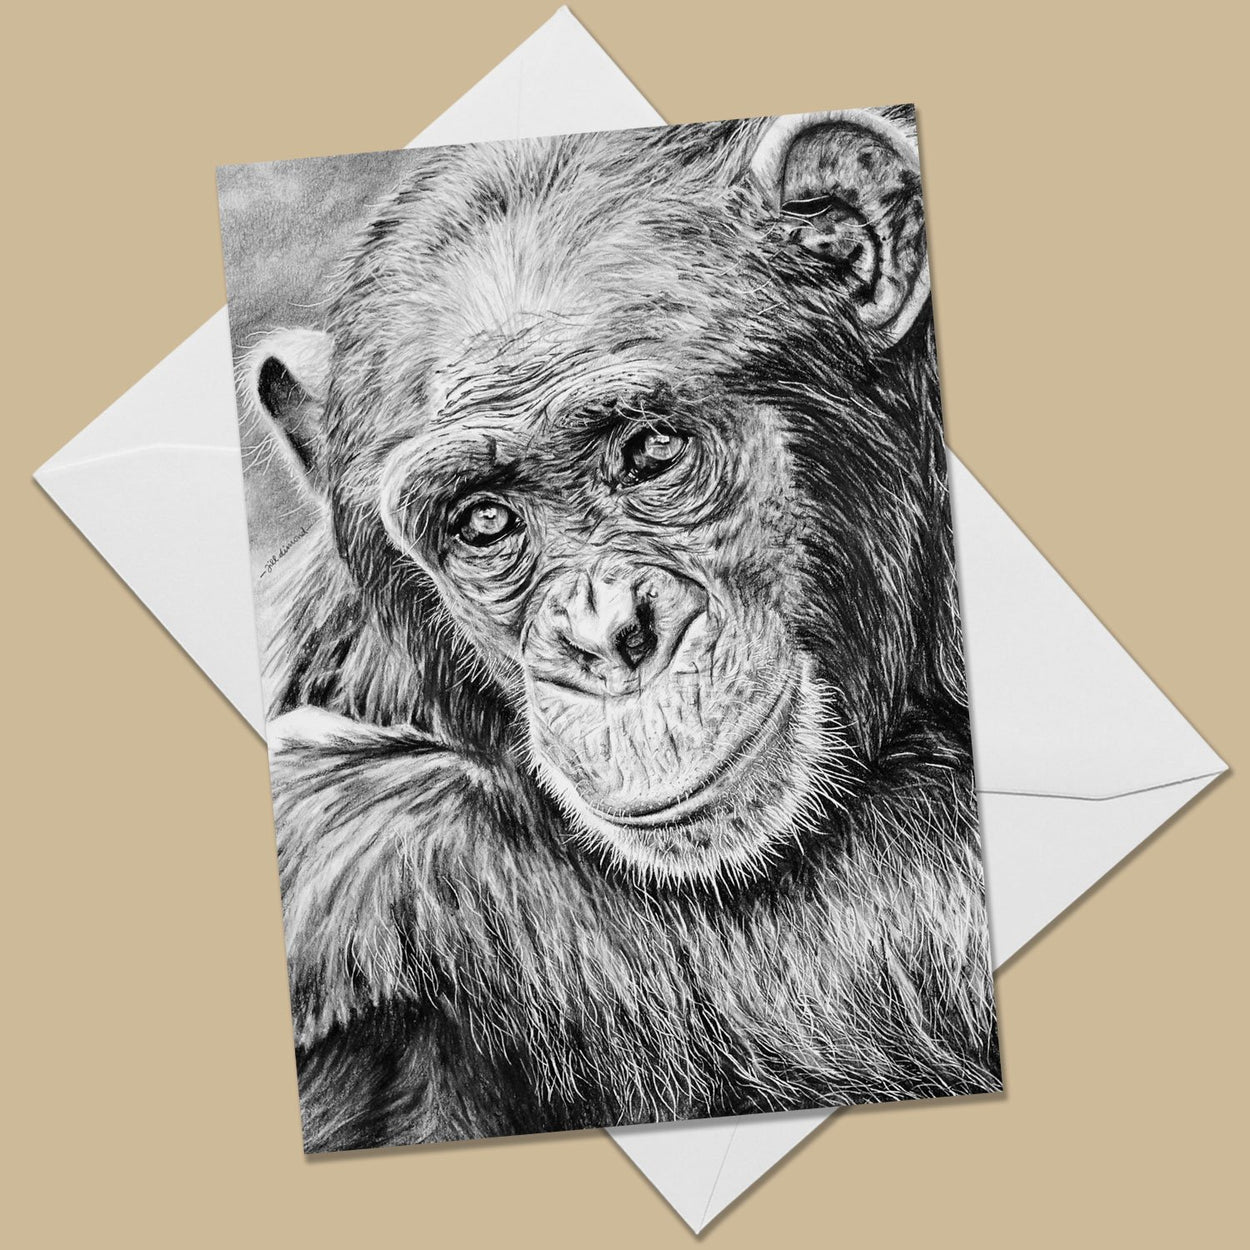 Chimpanzee Greeting Card - The Thriving Wild